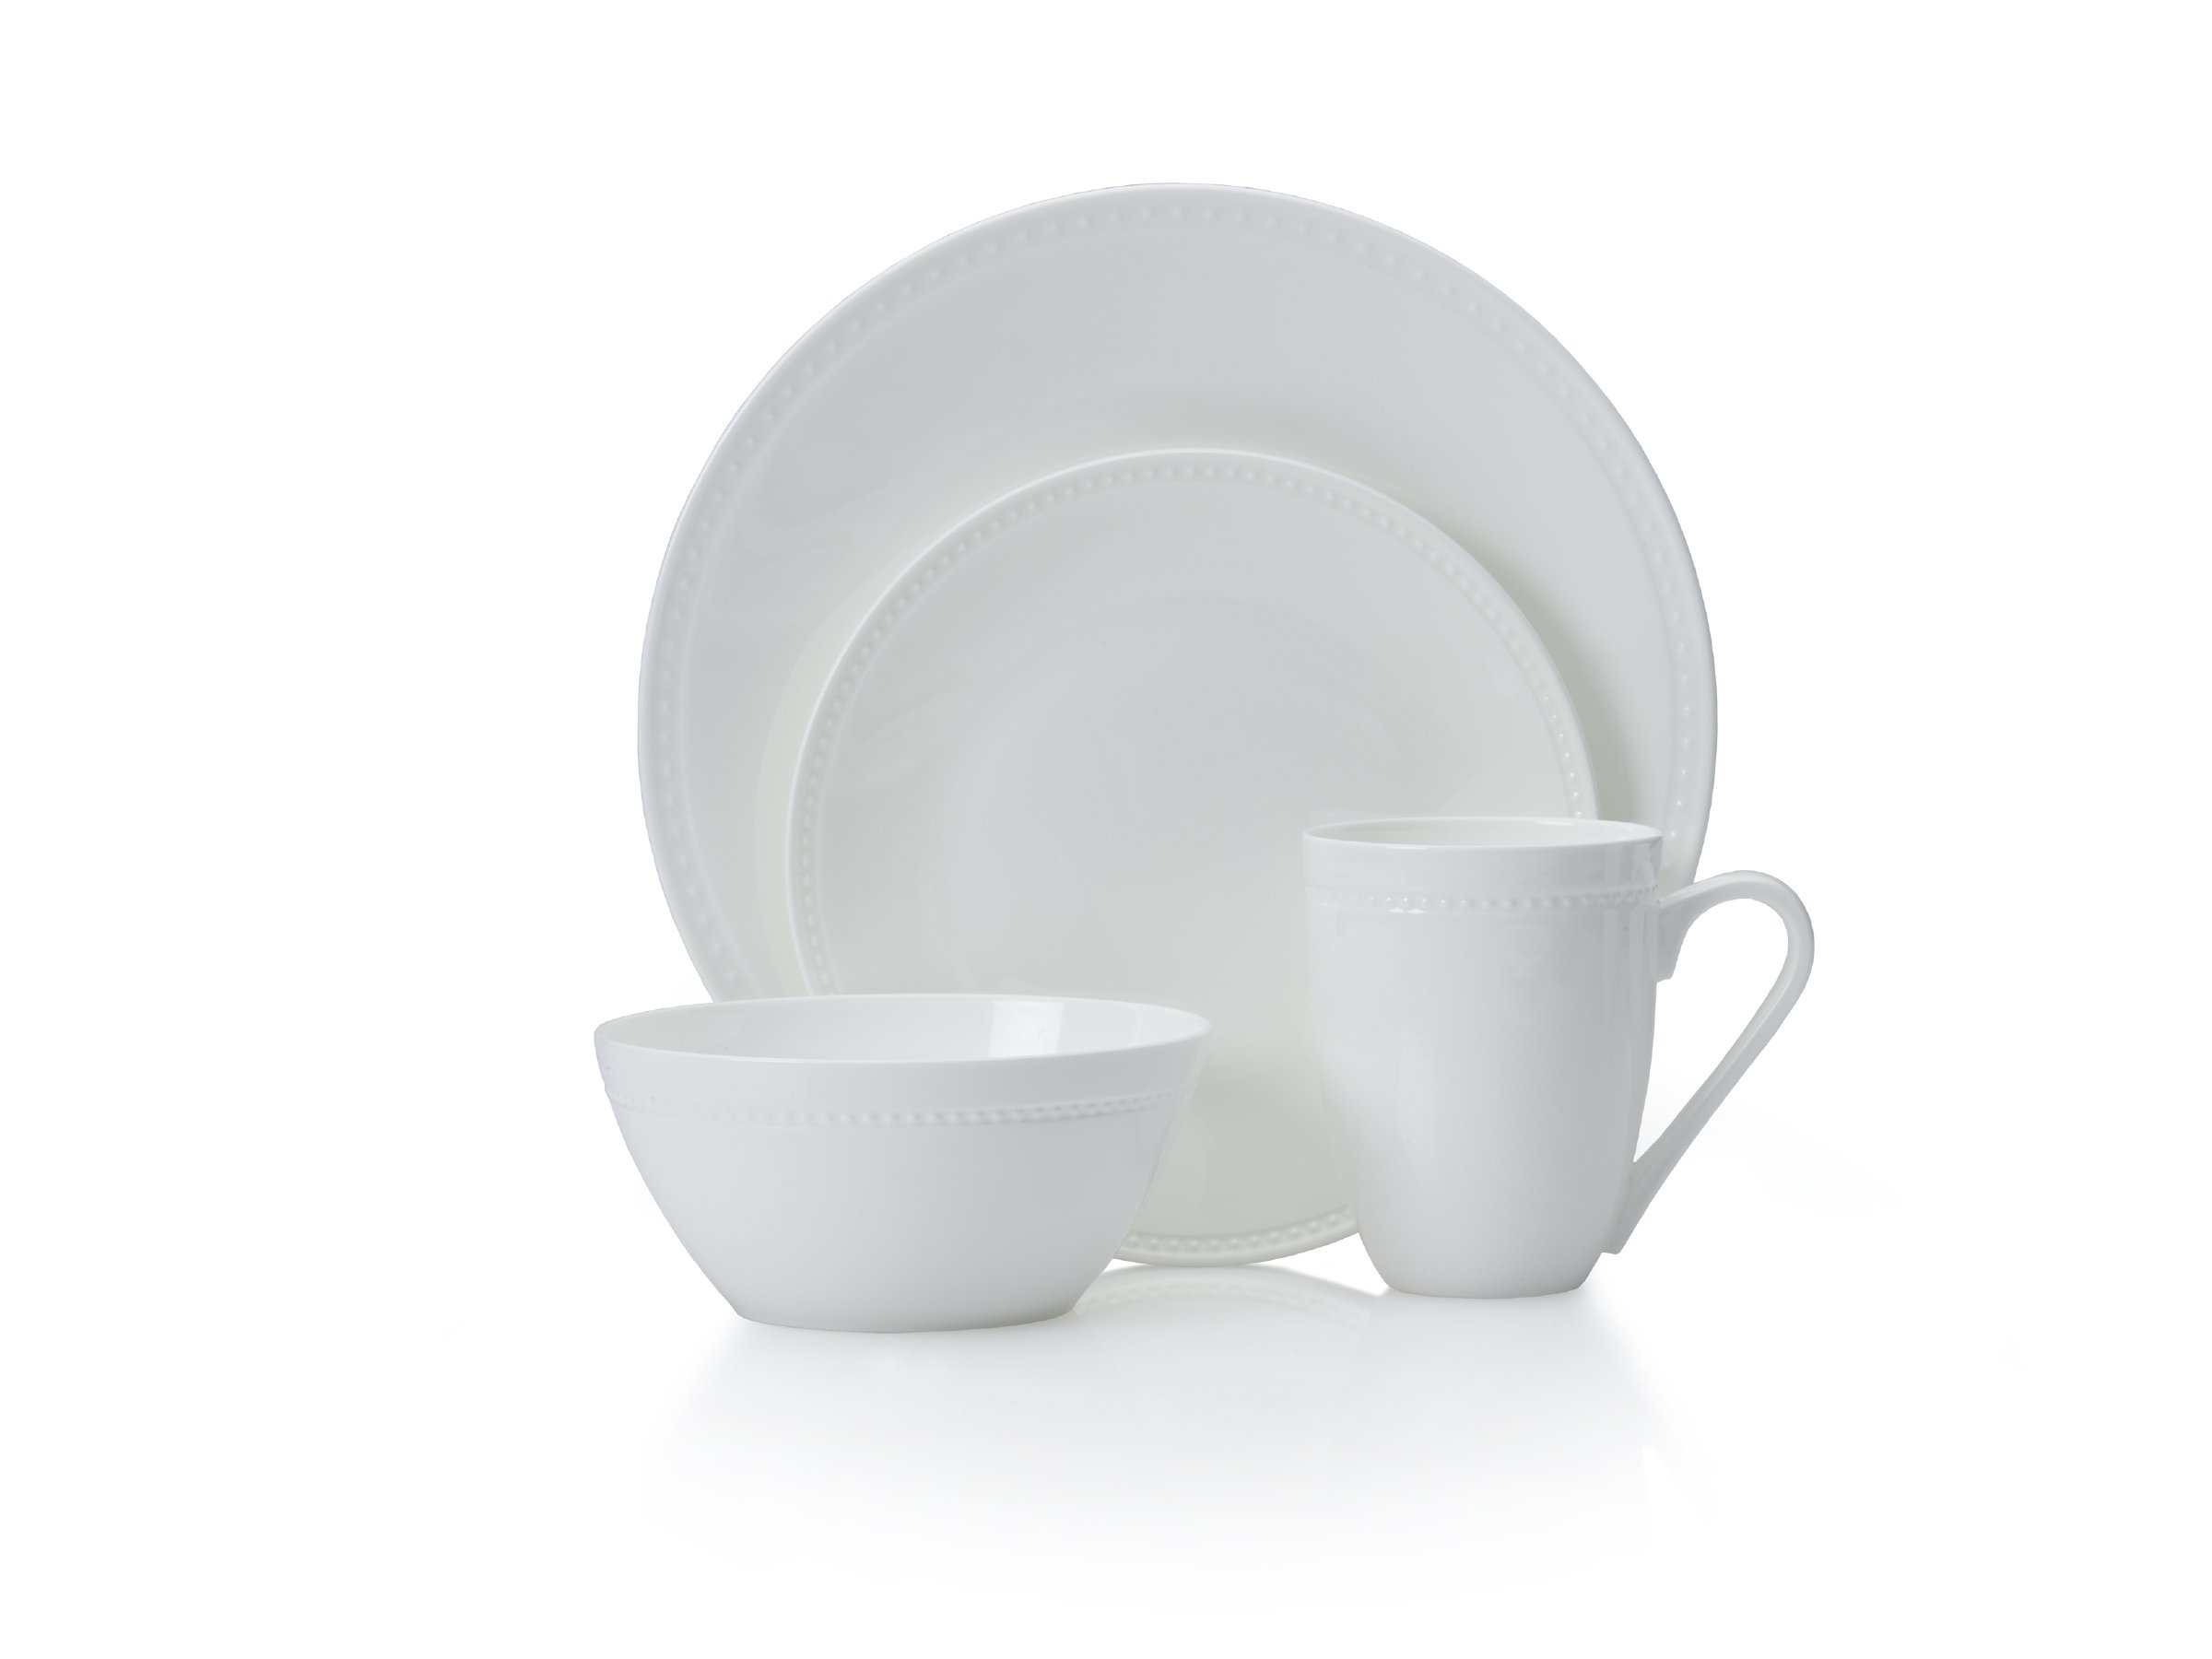 Mikasa Loria 16-Piece Bone China Dinnerware Set, Service for 4